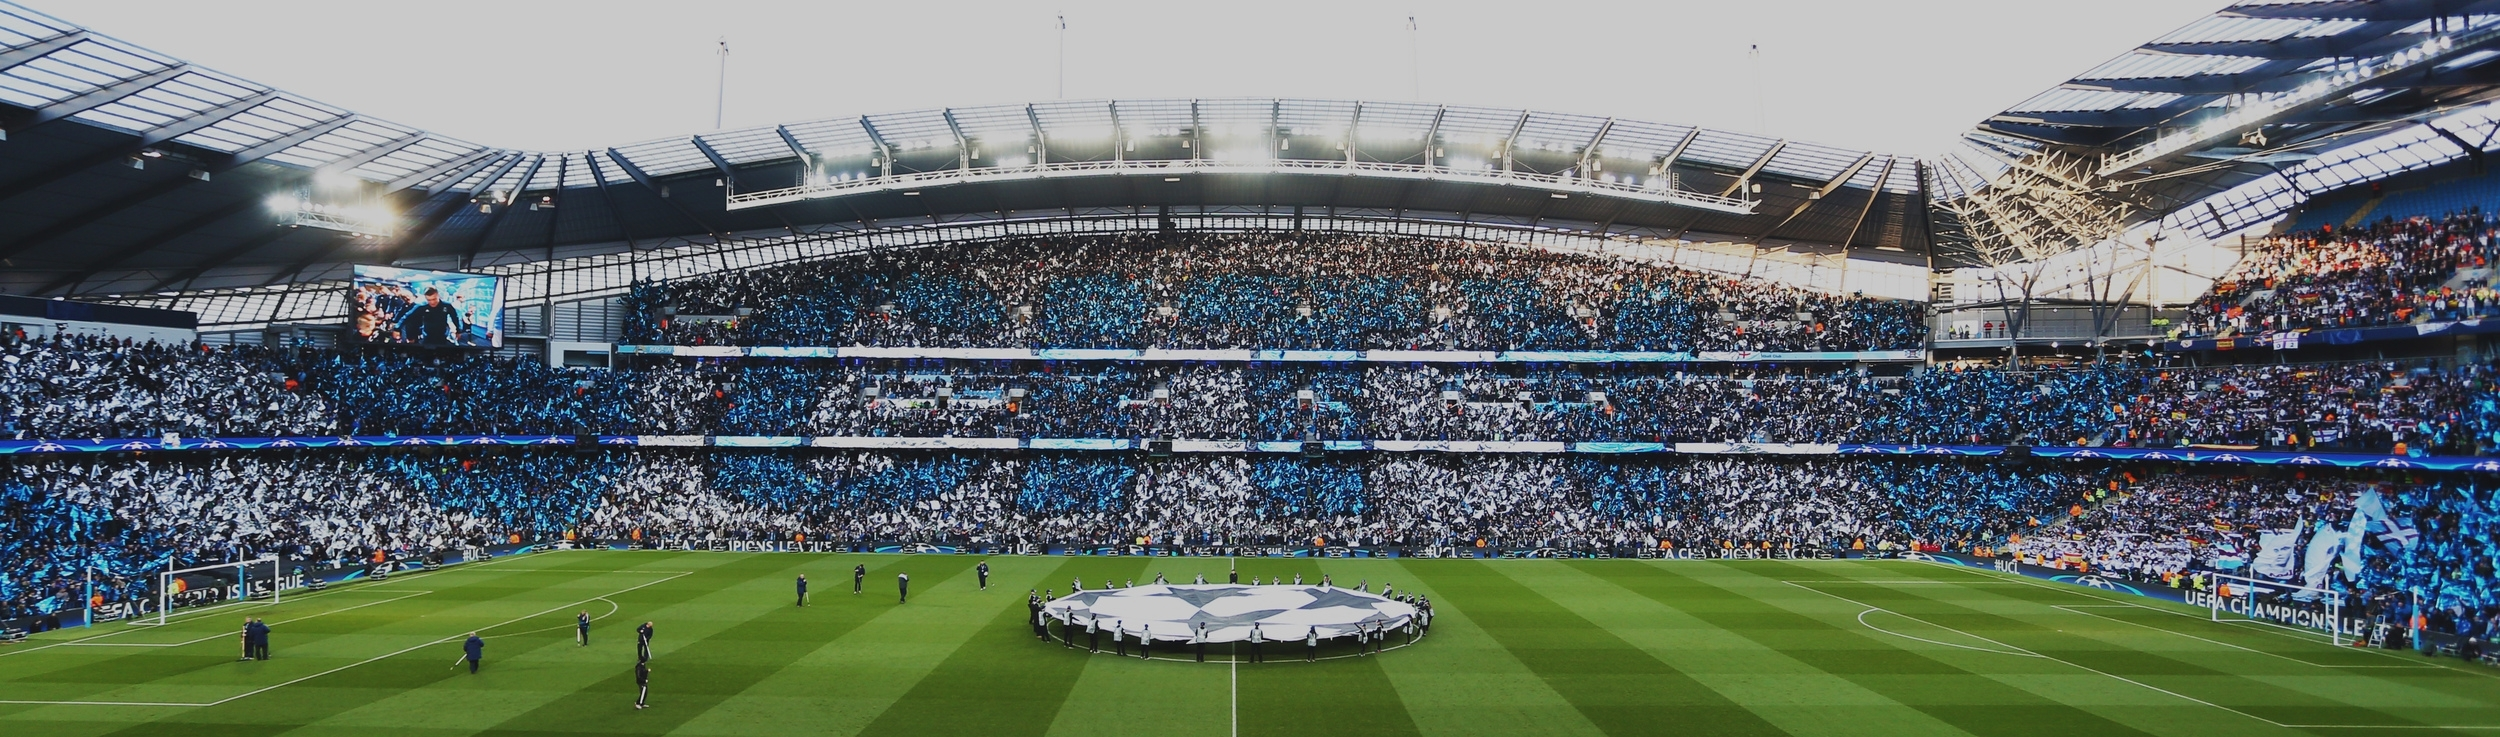 """FanCompass delivered creative technology that improved how we engage with our global fan base. This proved to be an important partner as we increased brand and revenue growth.""   Tom Glick   Former COO, City Football Group"